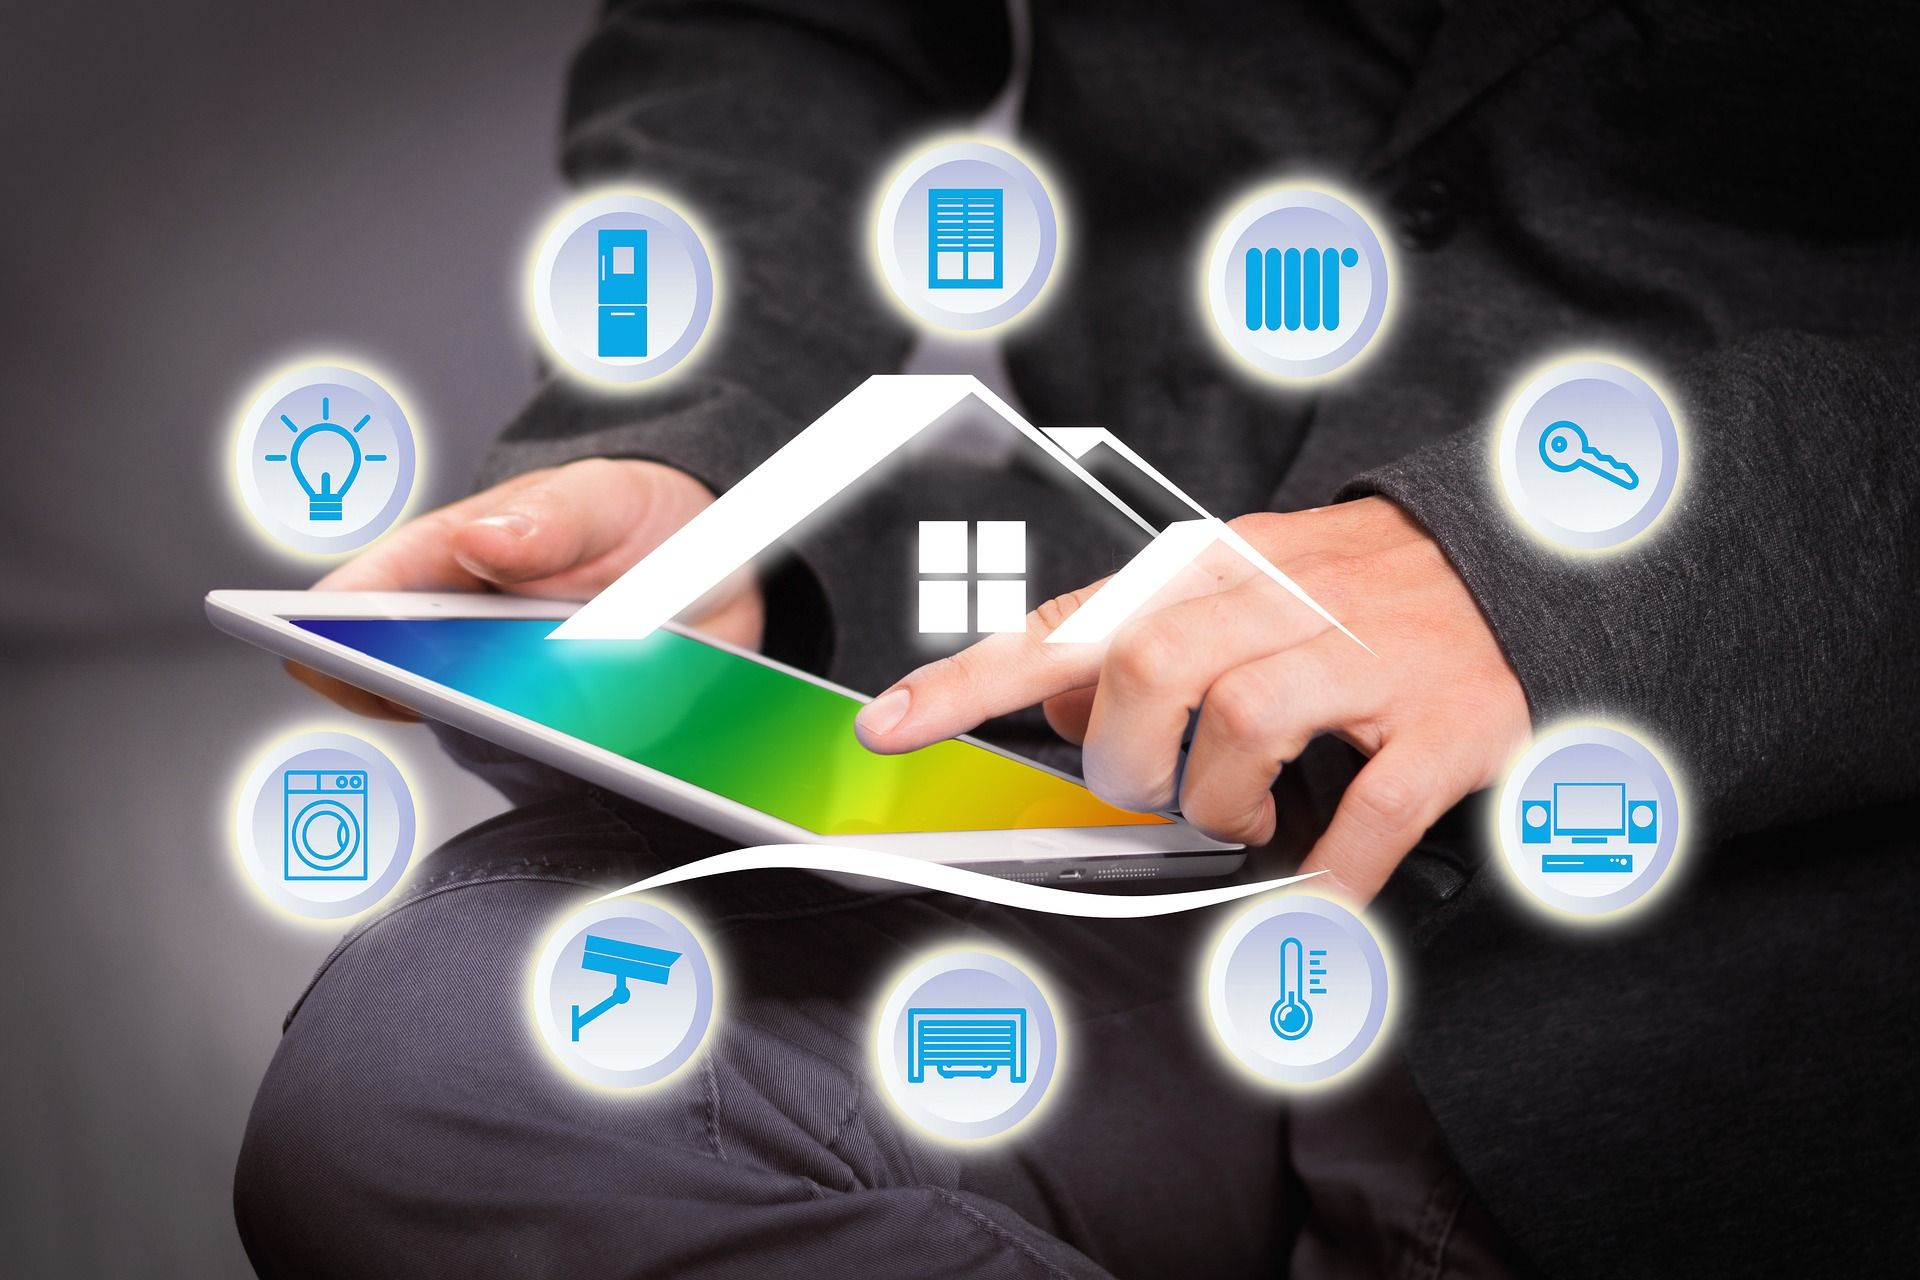 'How smart home tech helps me live independently'